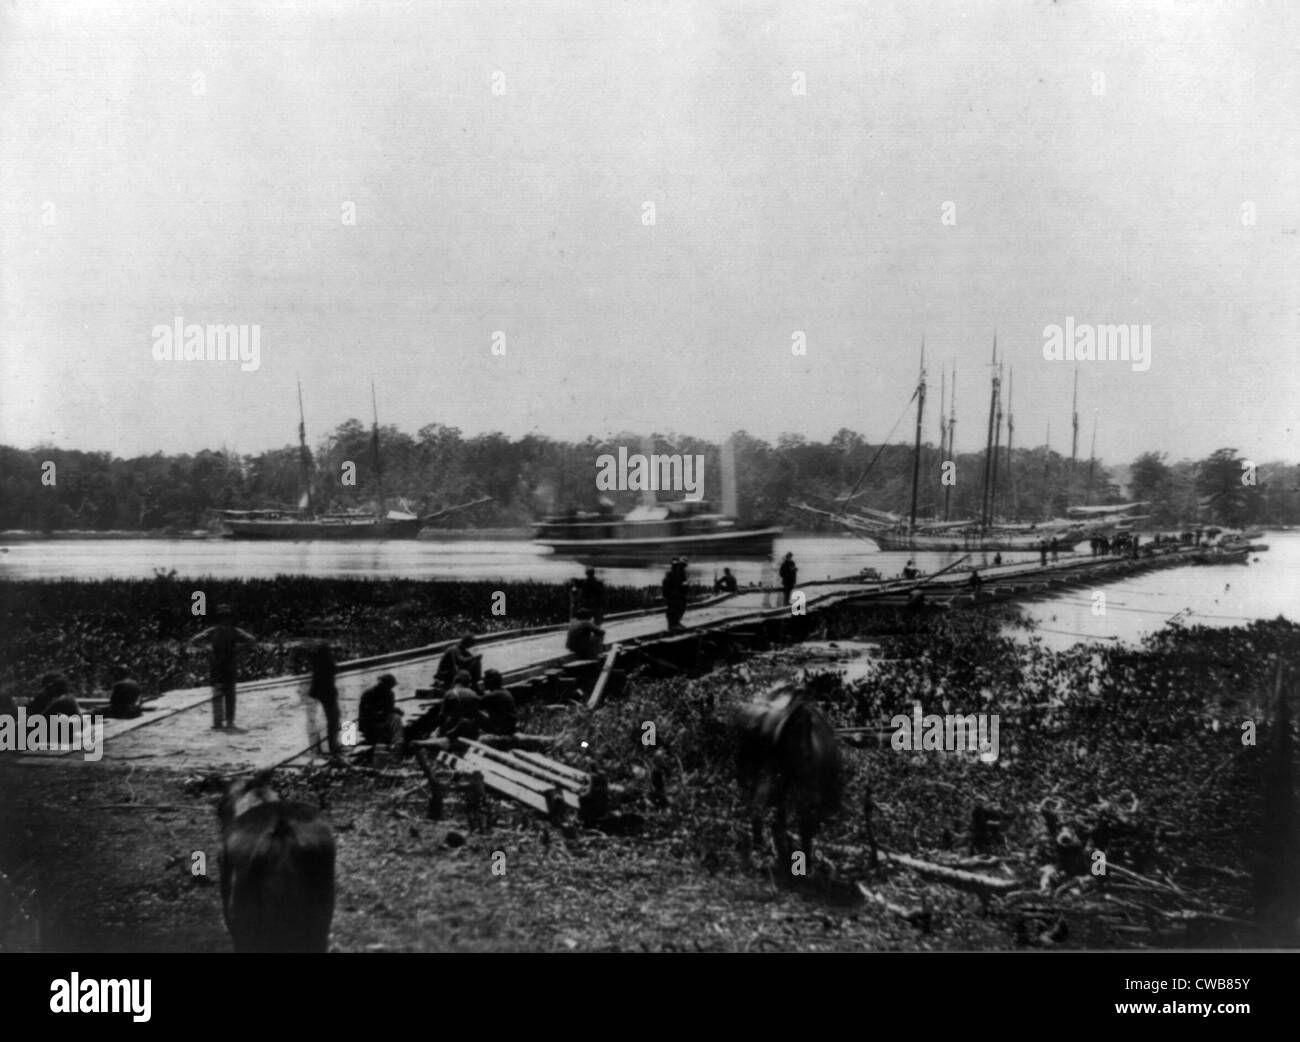 The Civil War. Pontoon bridge across the James River, Virginia. 1864 Stock Photo